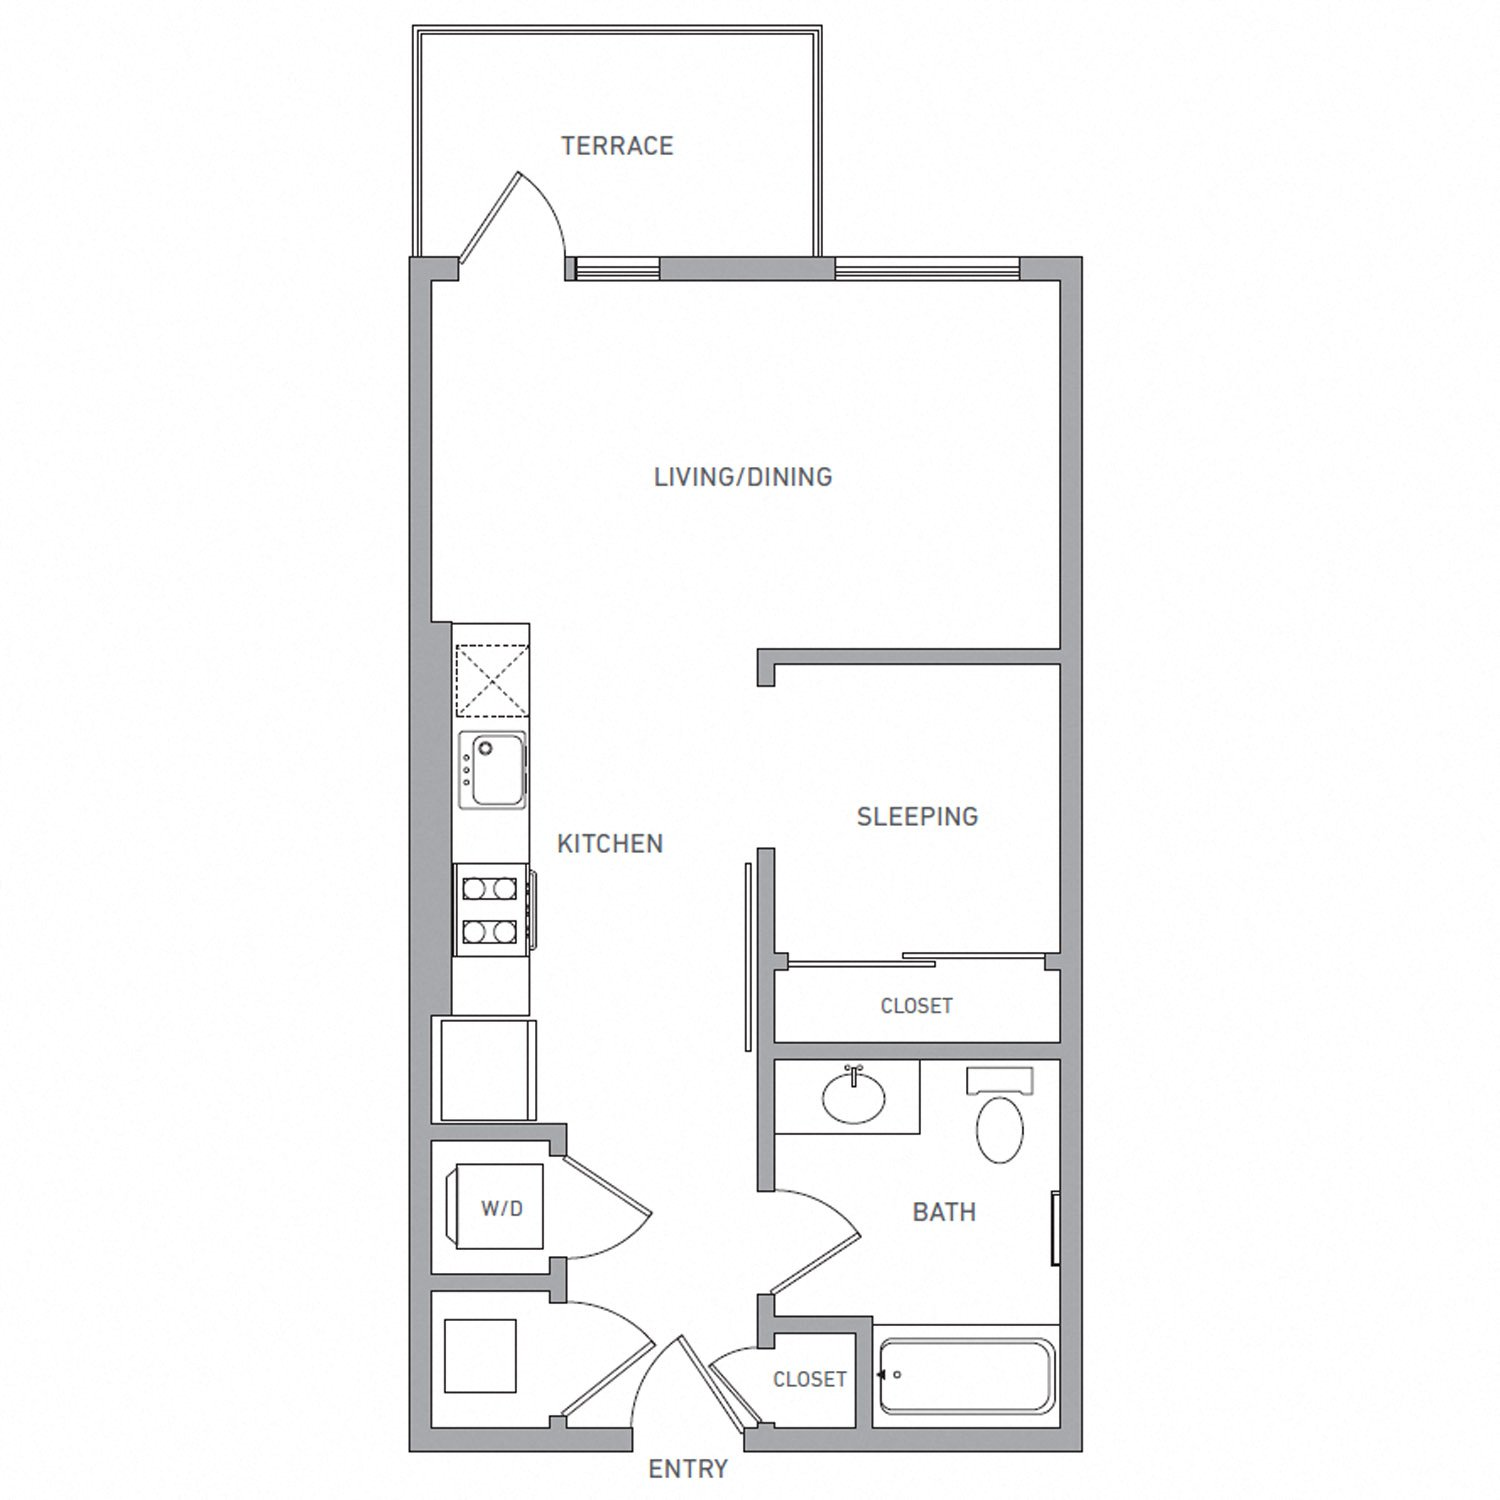 A One U A floor plan diagram. One bedroom, one bathroom, an open kitchen and living area, a terrace, and a washer dryer.